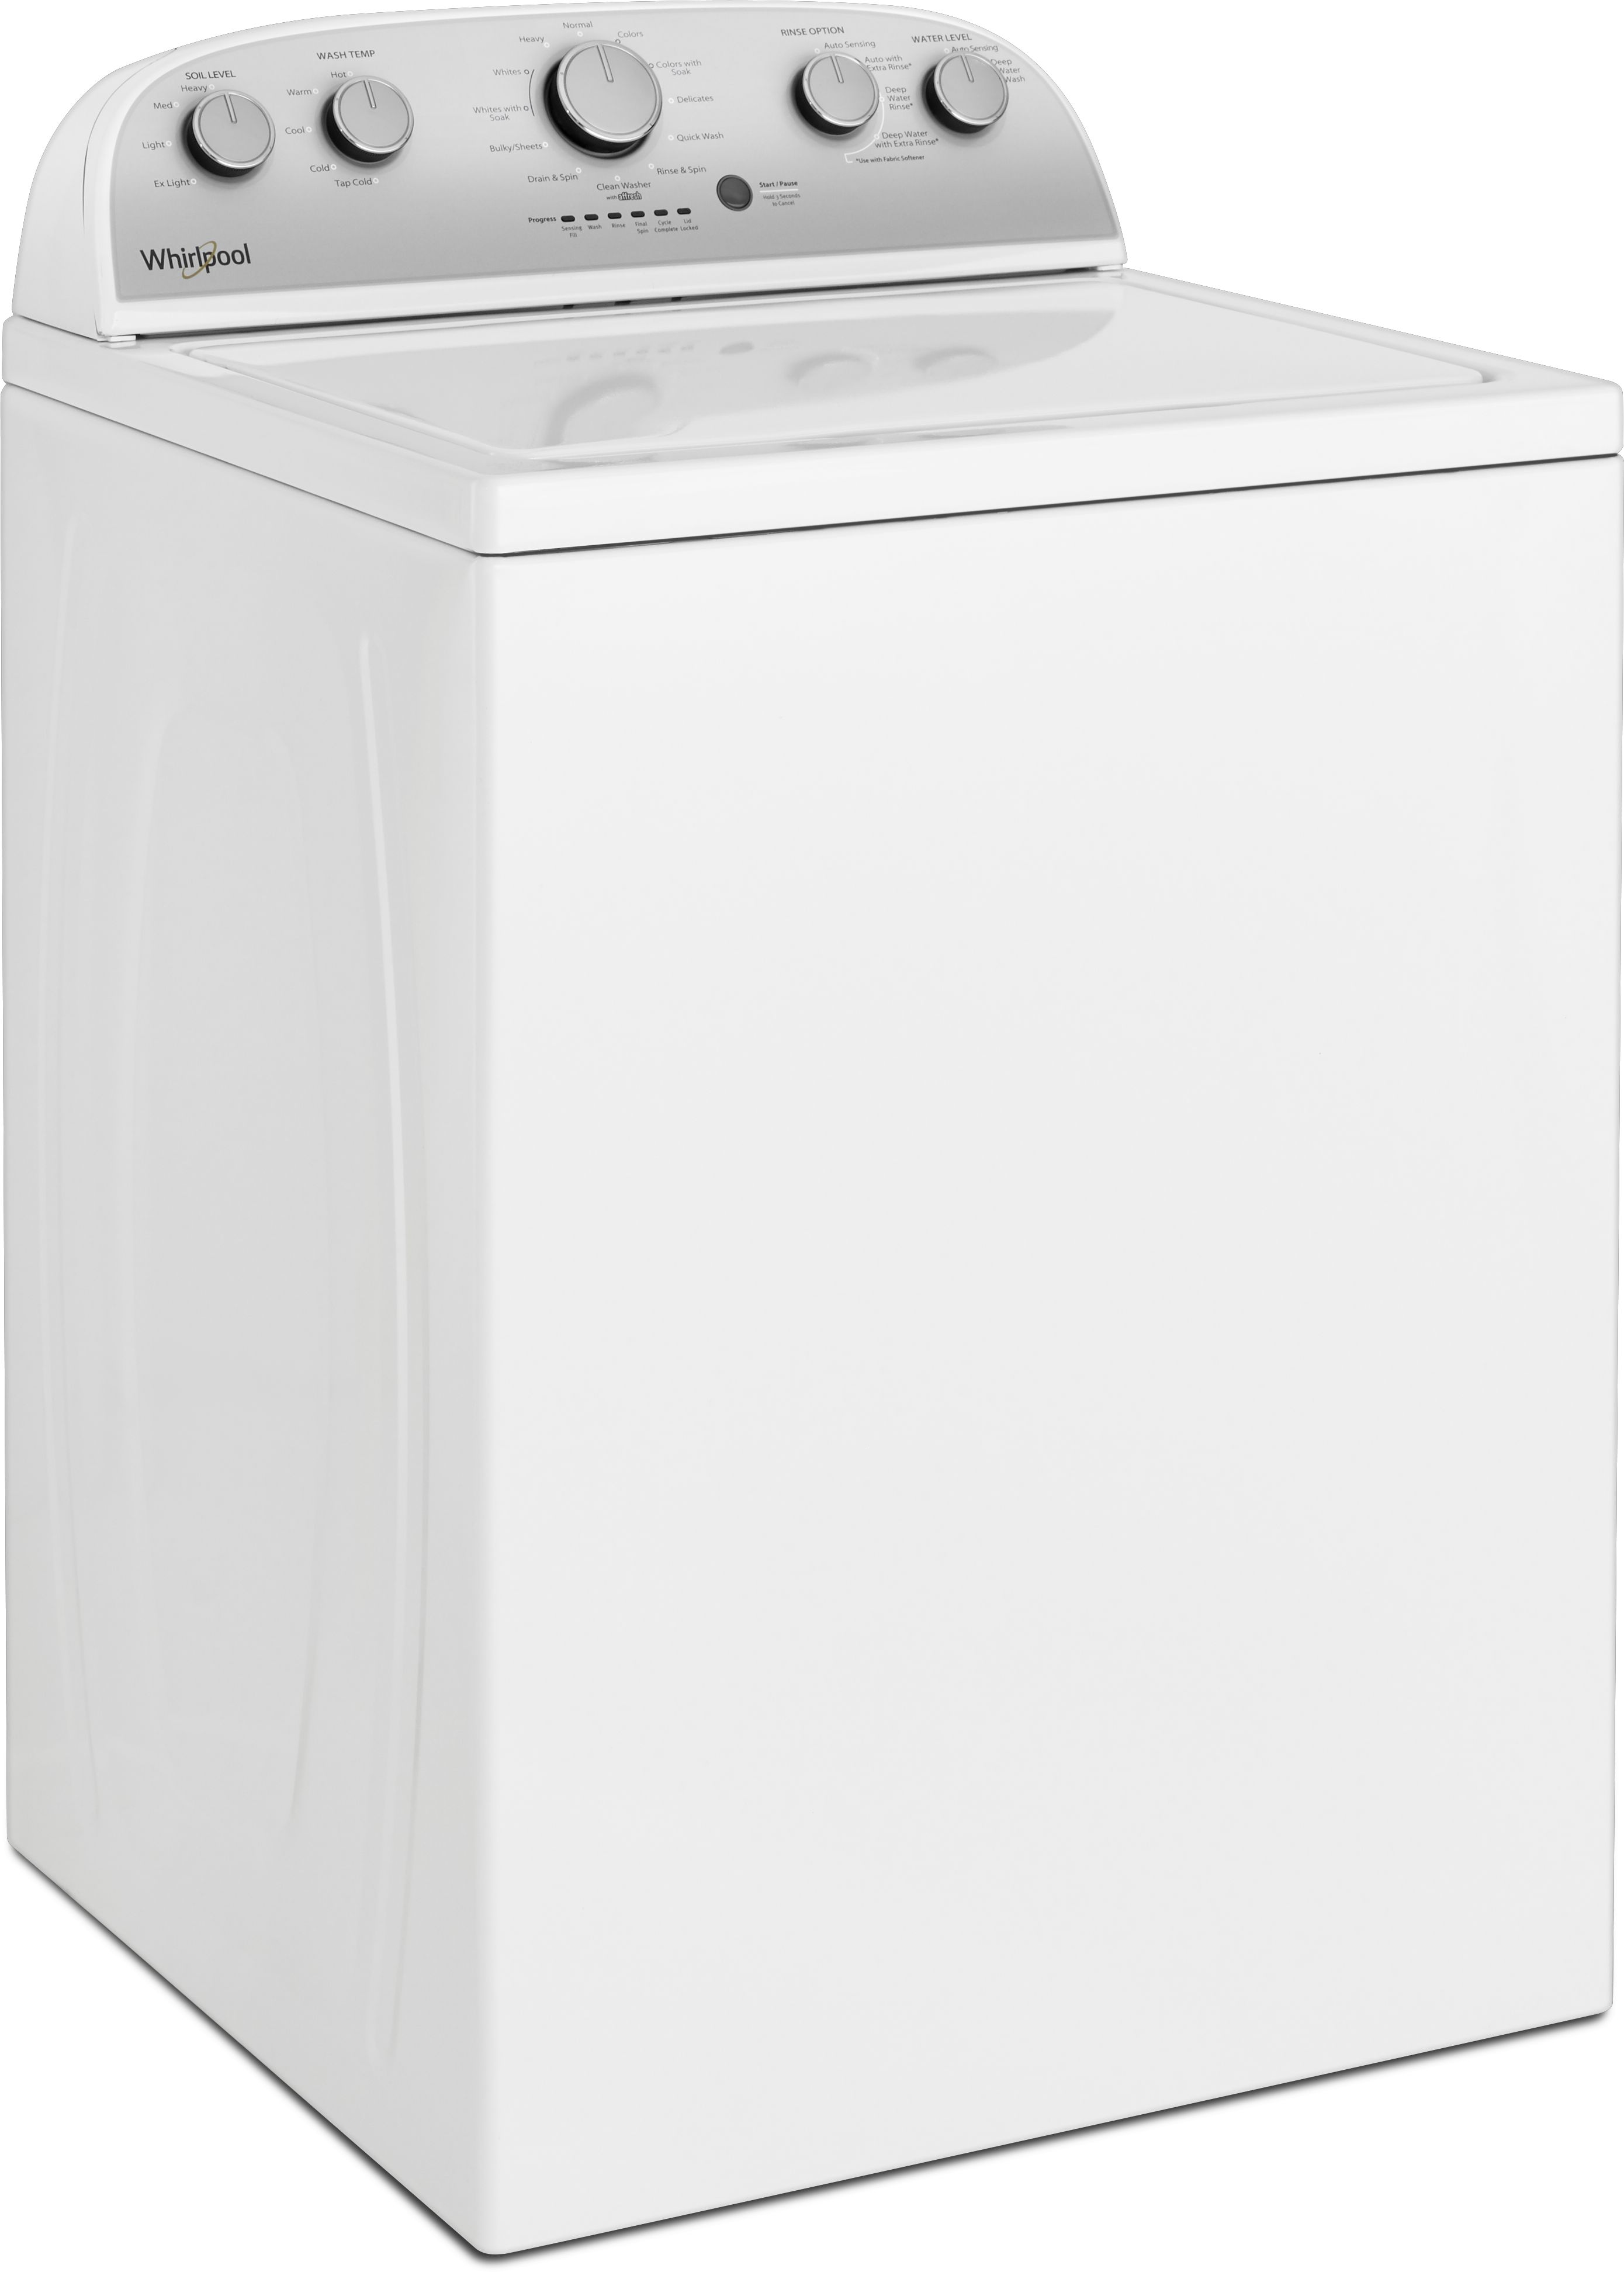 Whirlpool® Top Load Washer-White-WTW4950HW | Spencer's TV